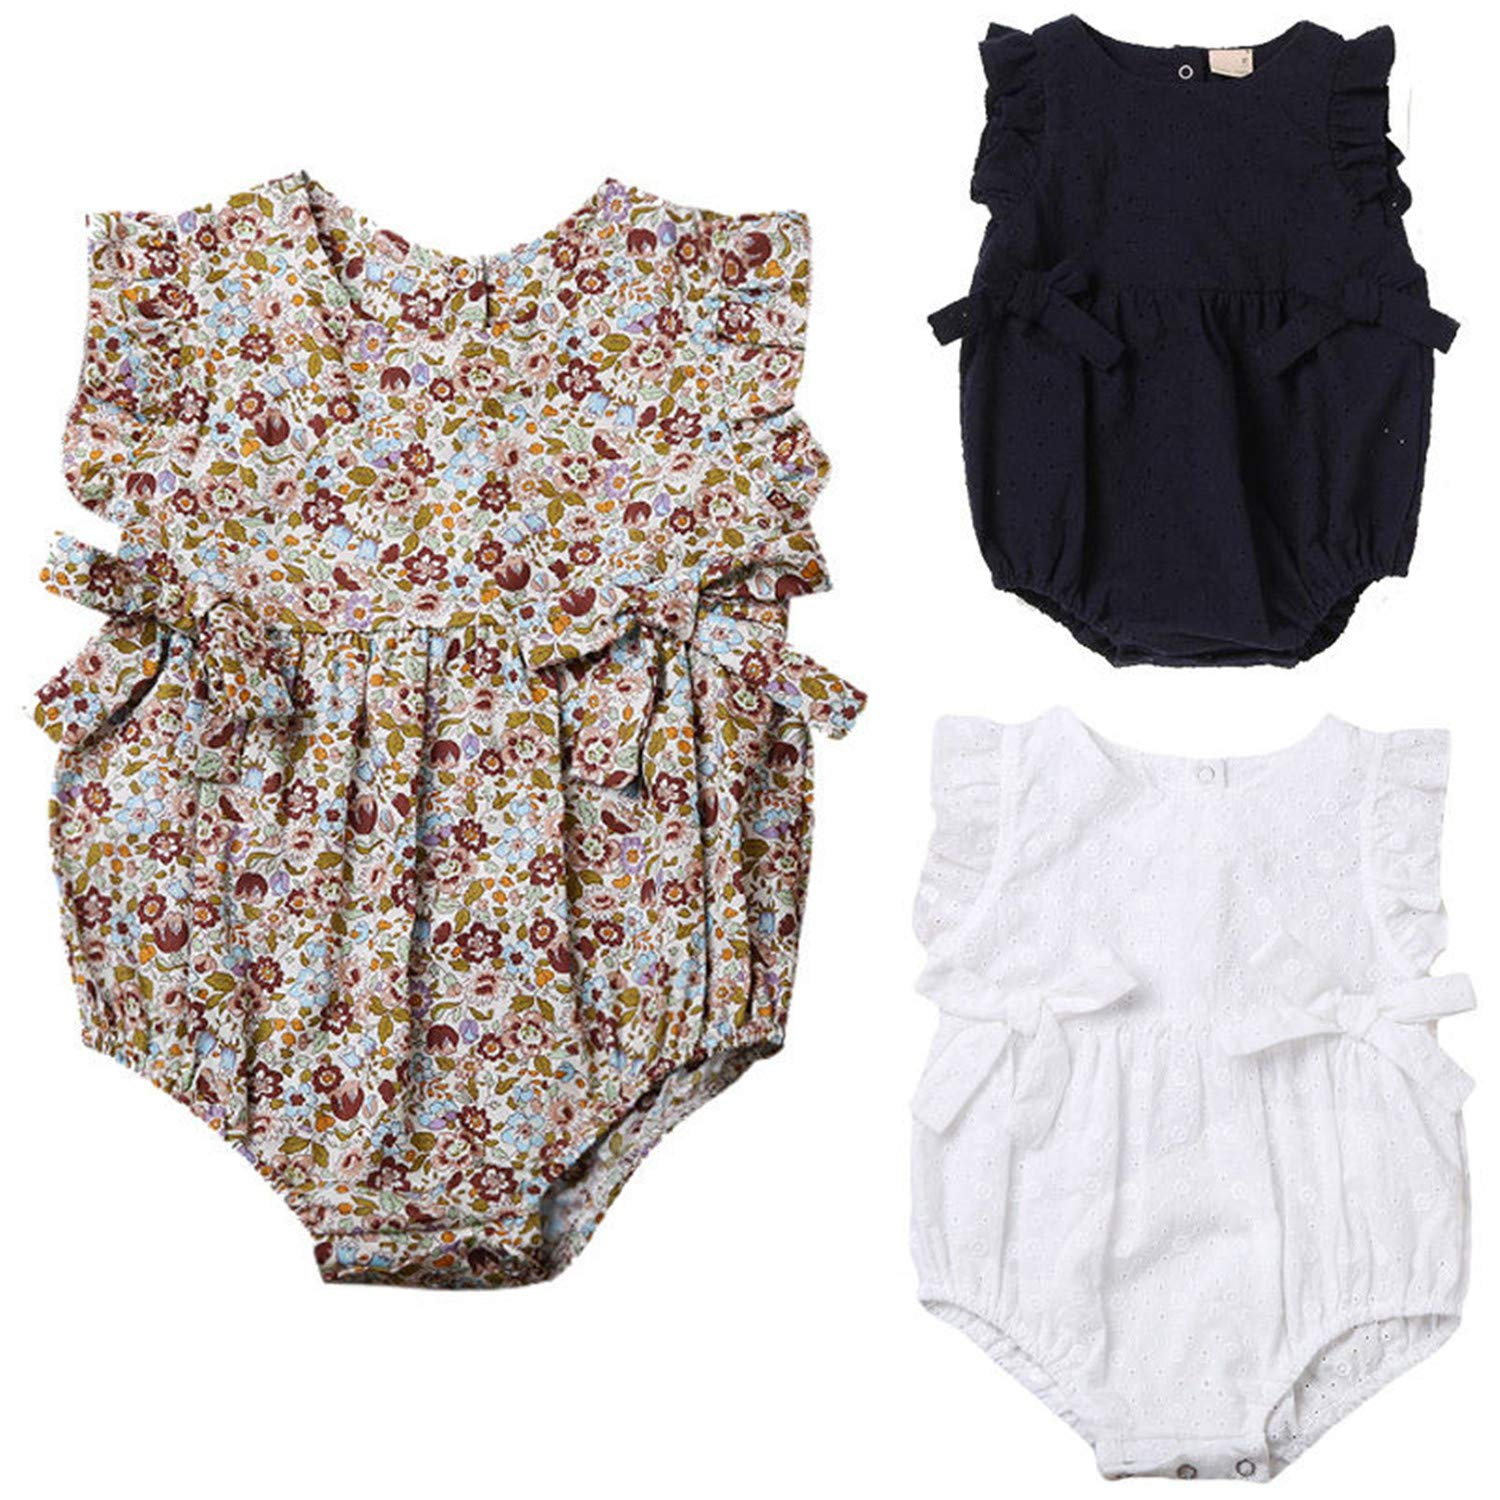 Cute Newborn Baby Girls Floral Romper Bowknot Clothes One Pieces Jumpsuit Outfit